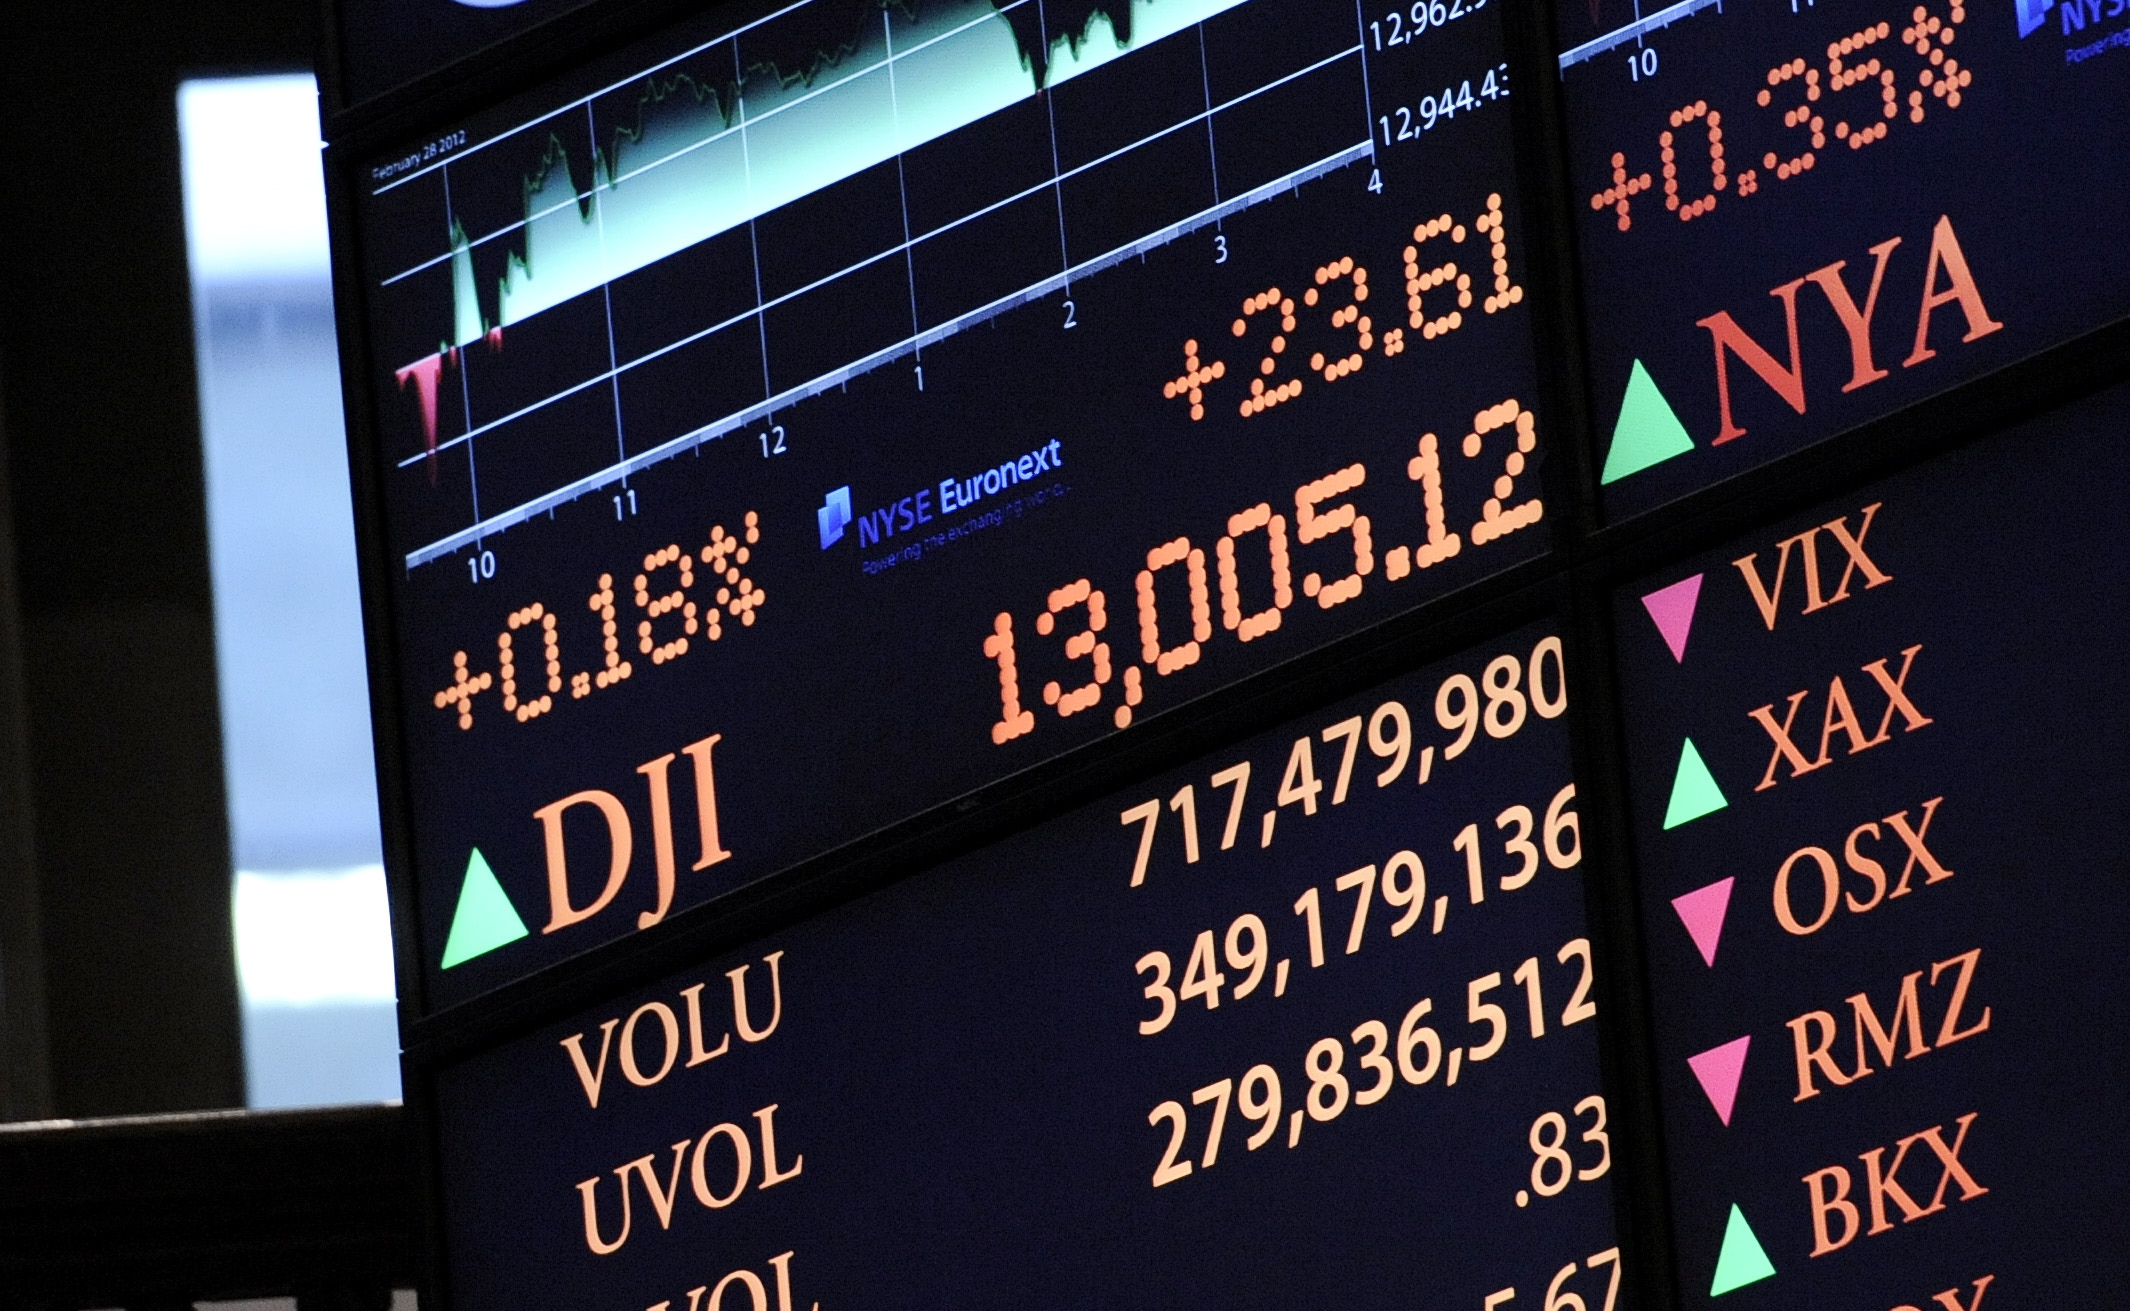 The Dow Jones Industrial Average DJIA or simply the Dow ˈ d aʊ is a stock market index that shows how 30 large publicly owned companies based in the